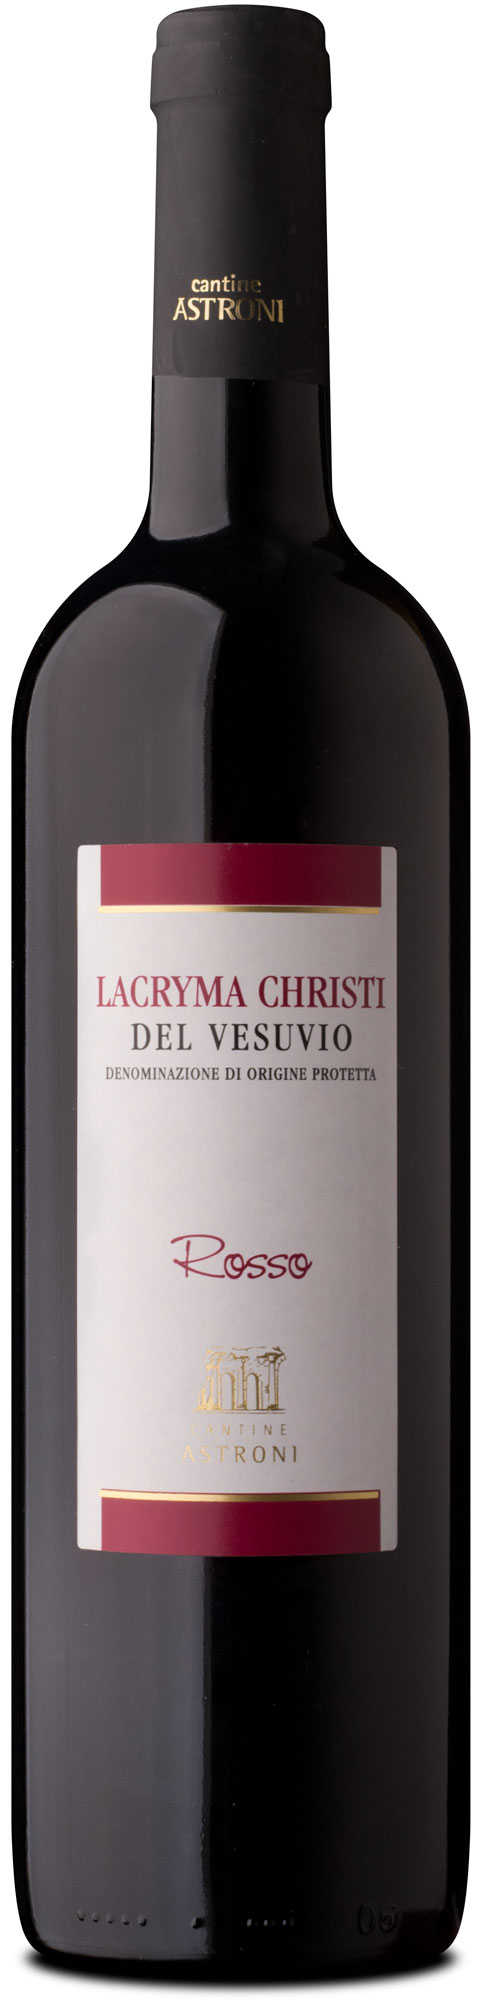 bottle of Lacryma Christi del vesuvio rosso tradition line - Astroni